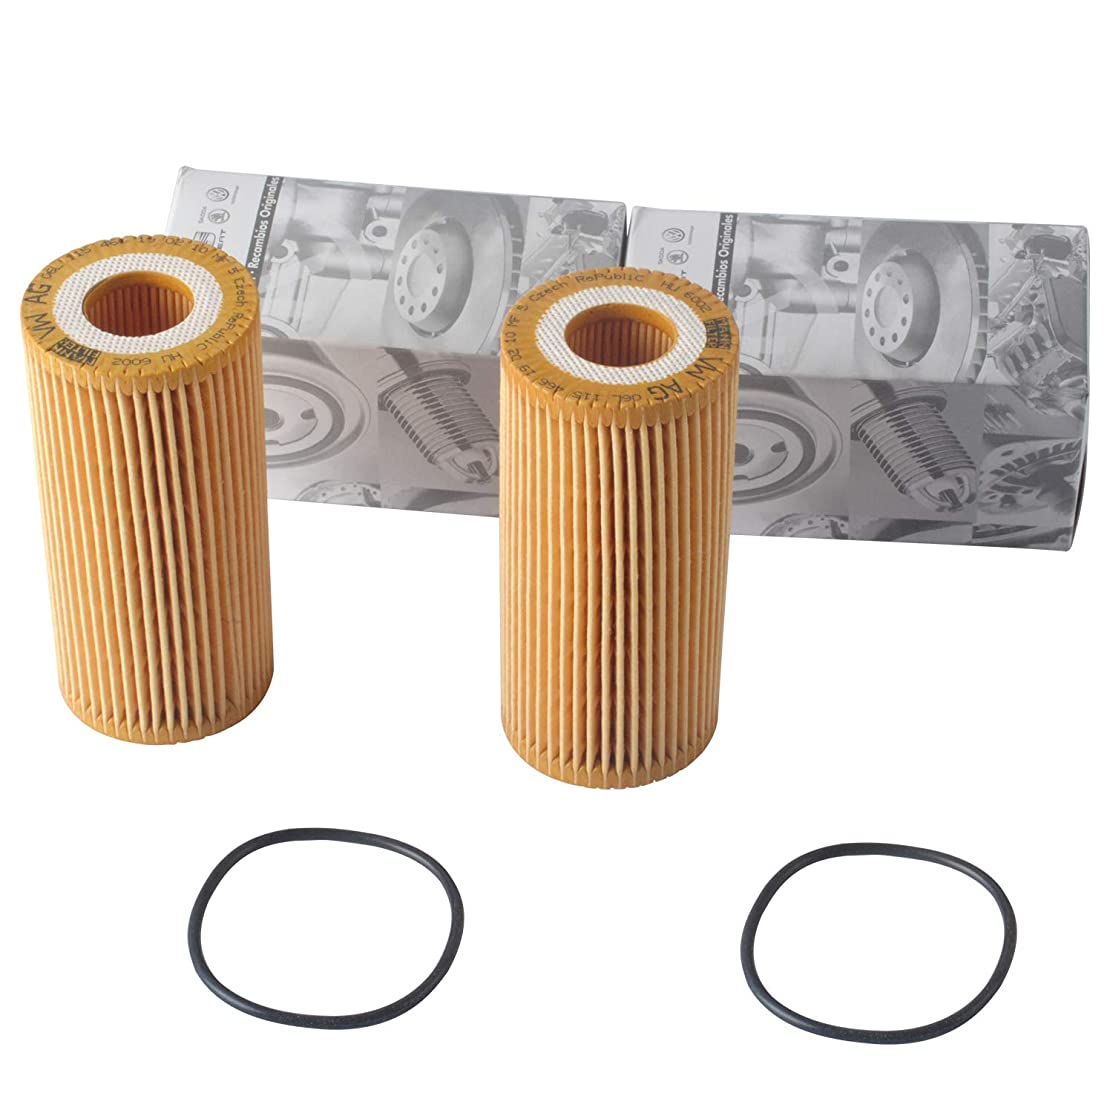 06L-115-562 HU6002z Engine Oil Filter by Podoy Compatible with VW Passat Cabriolet Golf R Beetle 1.8T VW Golf 1.8 TSI 2016 VW GTI 2014 1.8T TSI Jetta Audi A3 06K 115 562